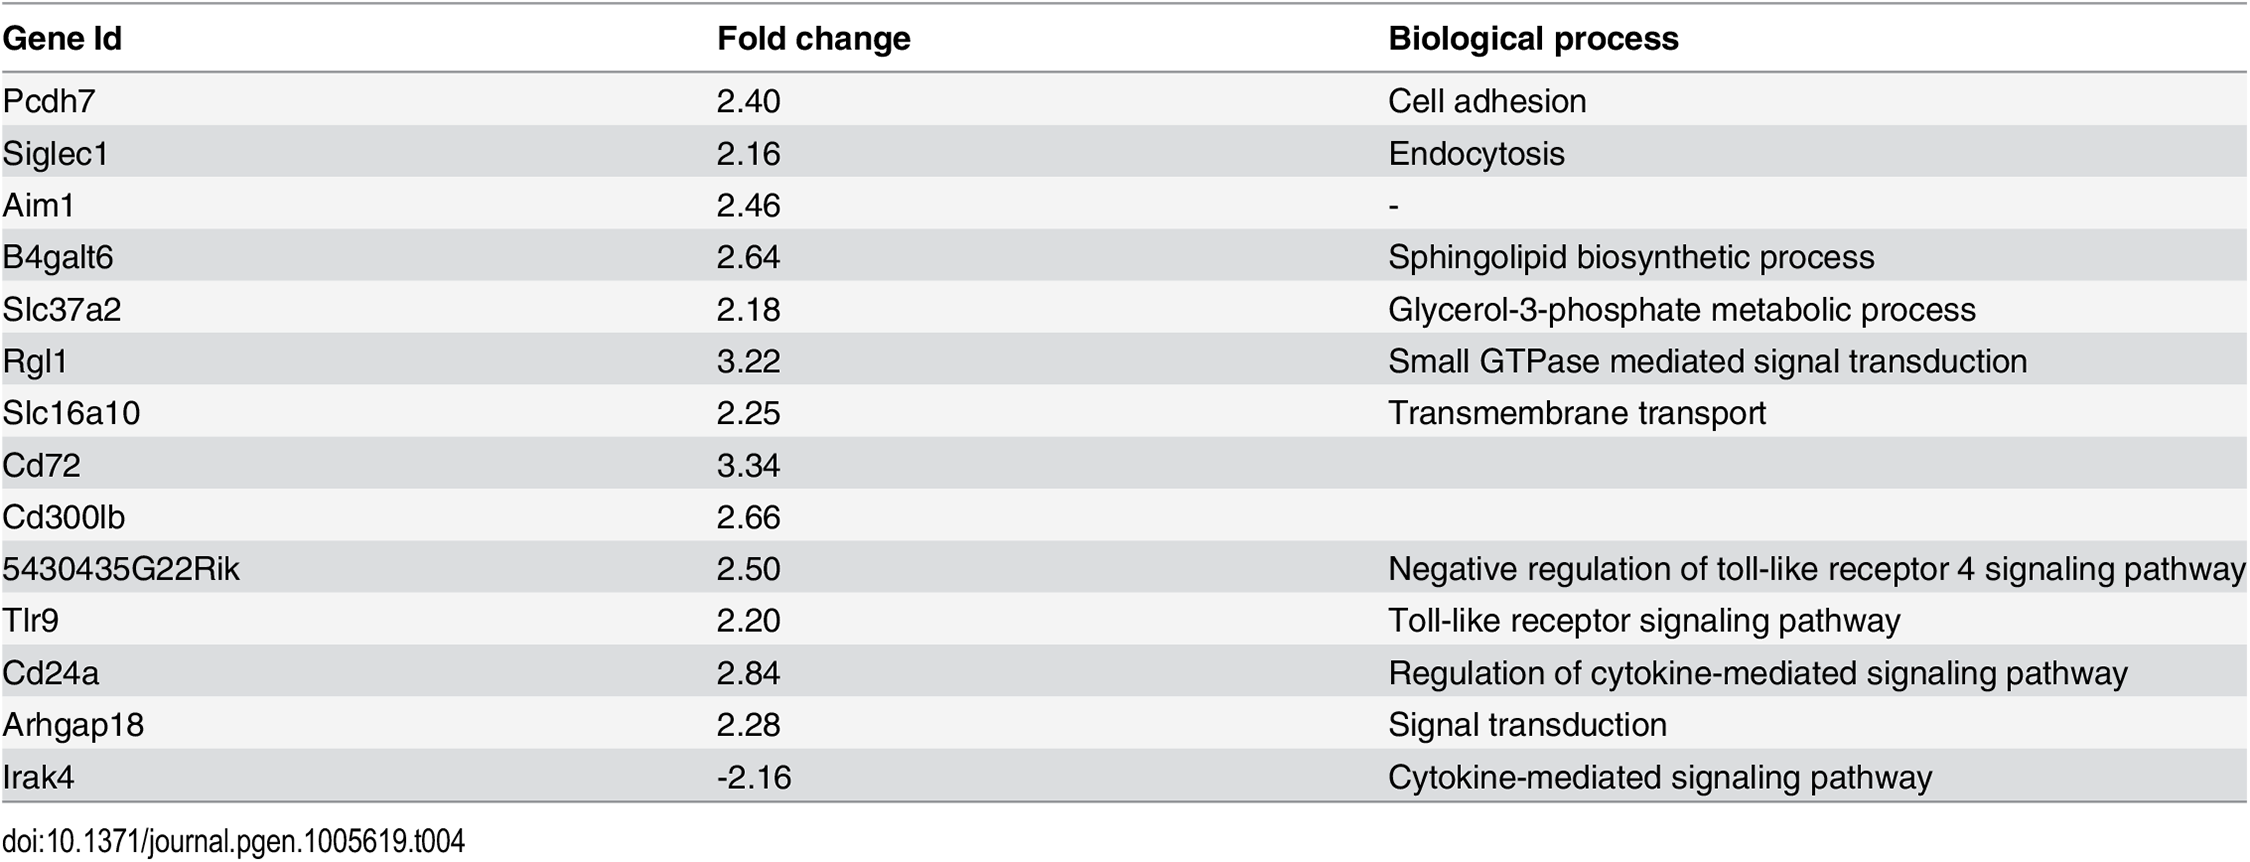 Genes from the chromosome 15 <i>trans</i>-band in IFNG+TNF-stimulated BMDM that were perturbed by at least 2 fold after <i>Irak4</i> knockdown and IFNG+TNF stimulation of murine BMDM.